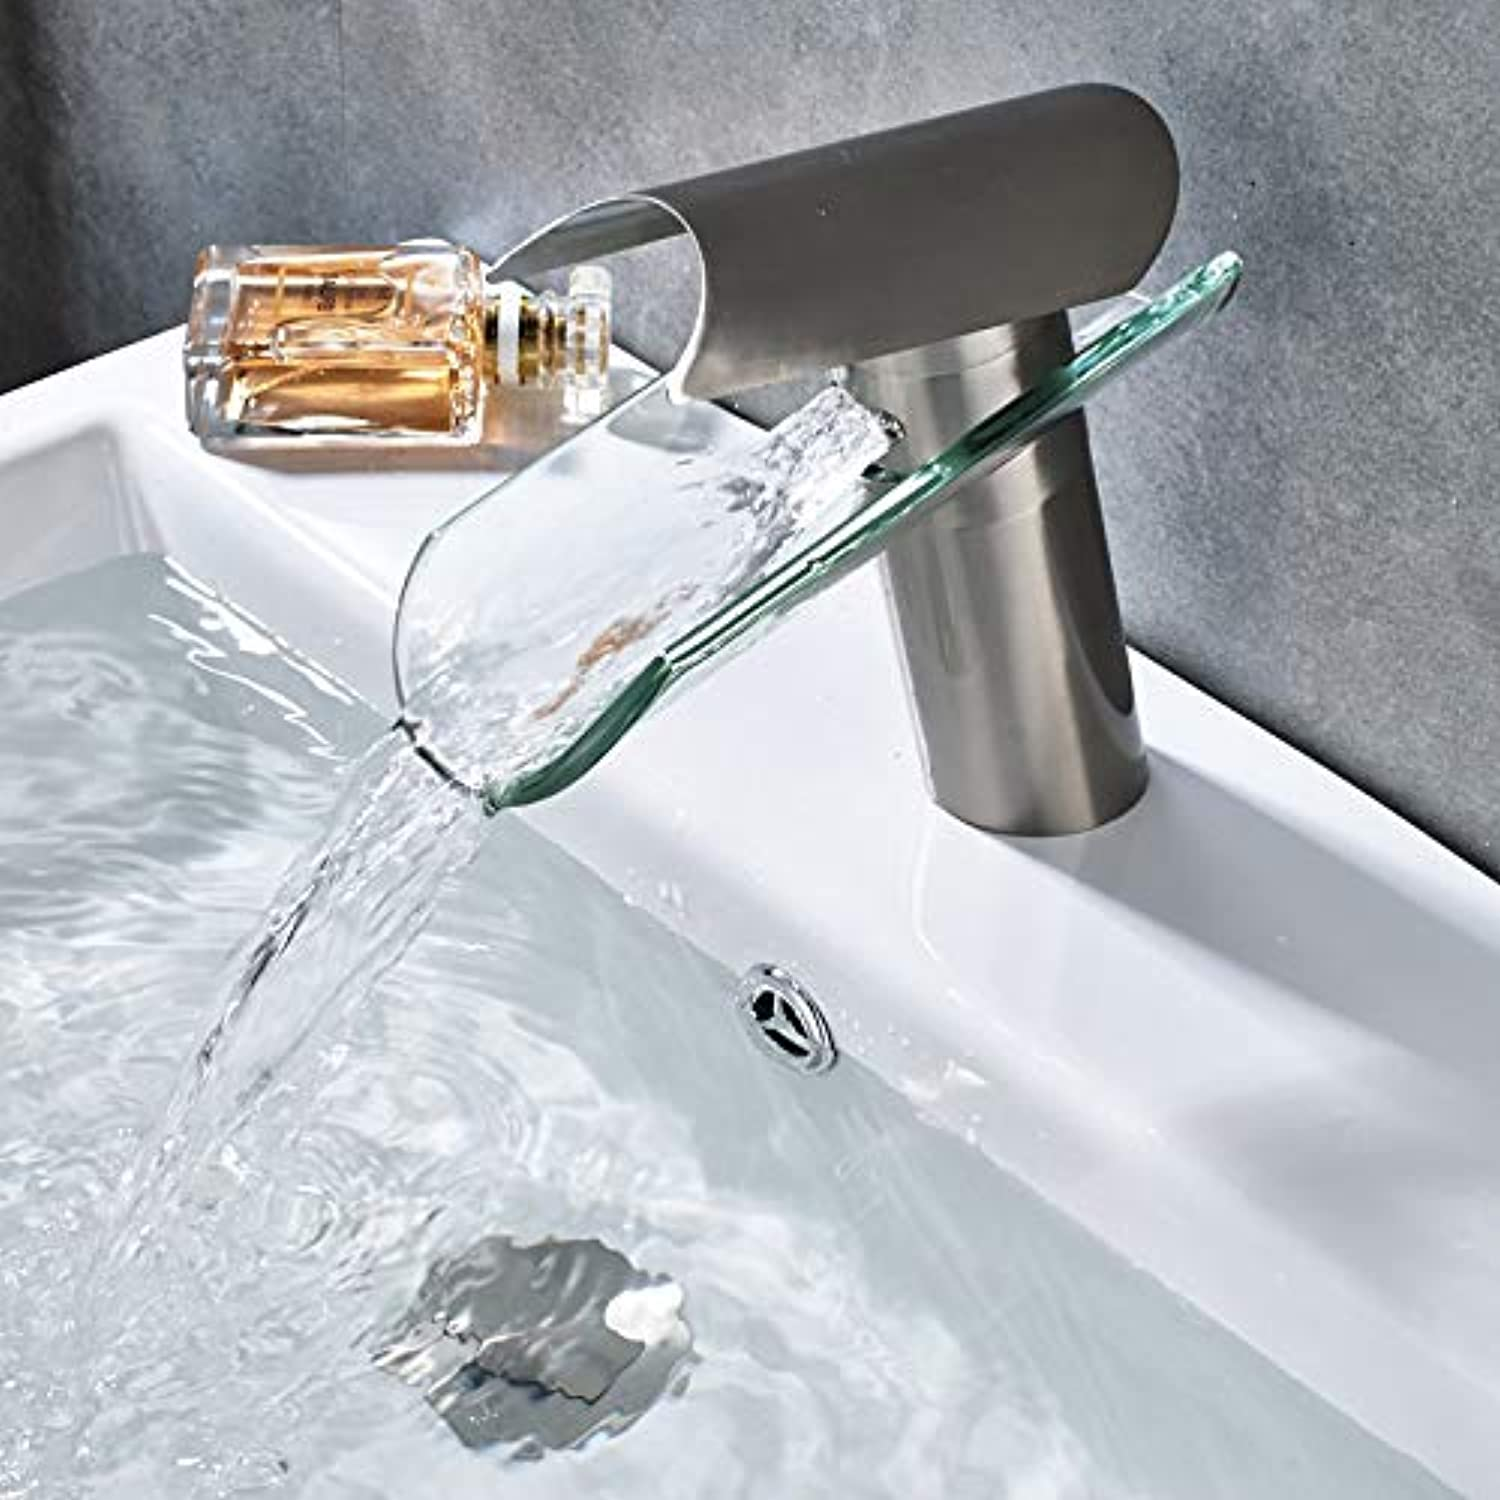 GeWu888 Chrome-Plated Brass Sink Faucet Waterfall Glass Bathroom Crane Hot and Cold Water Faucet Brushed Nickle Short